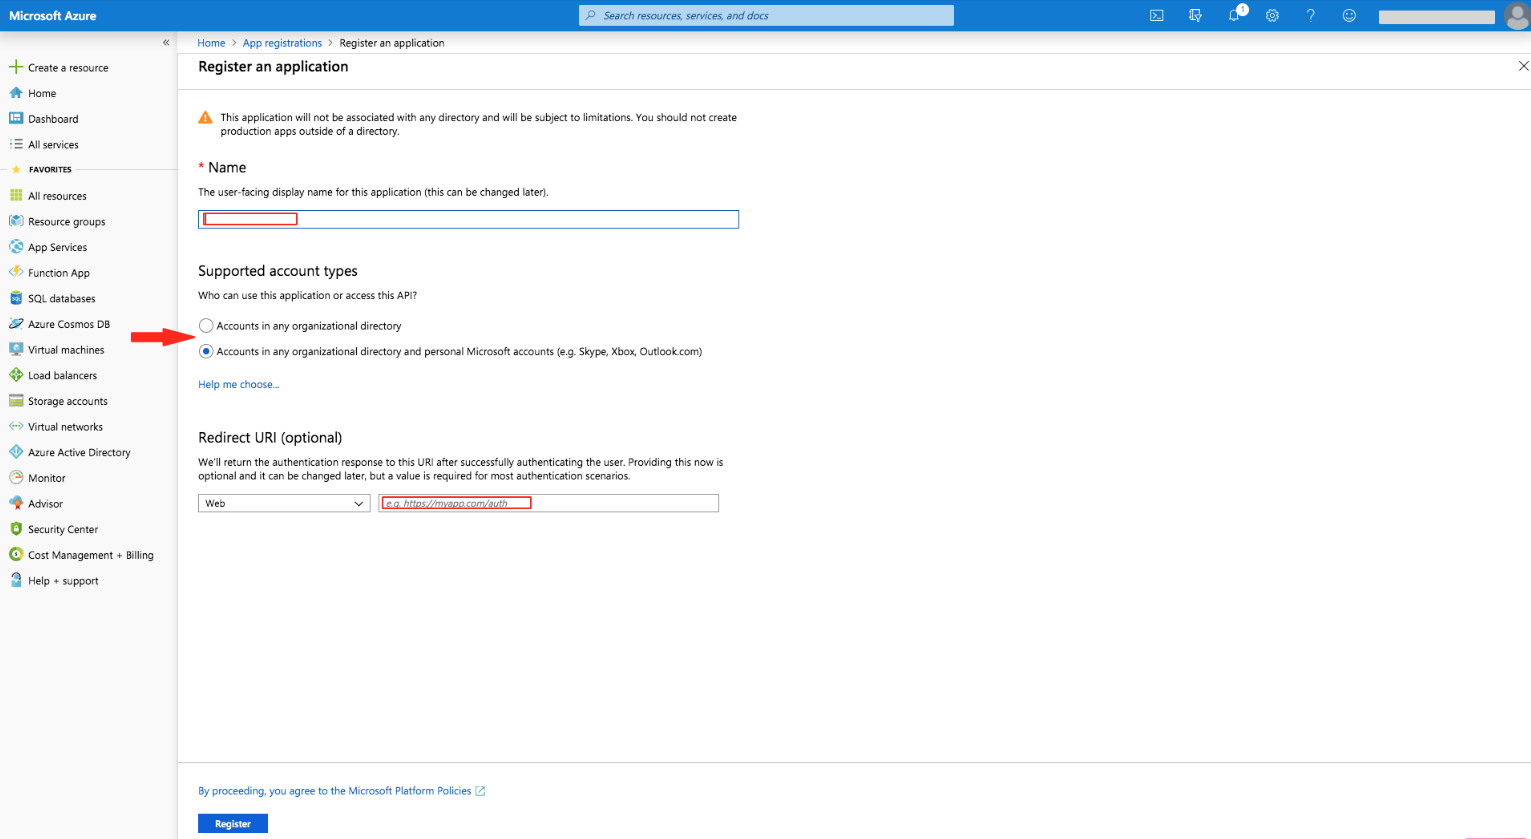 How can I get my Microsoft account Client ID and Client